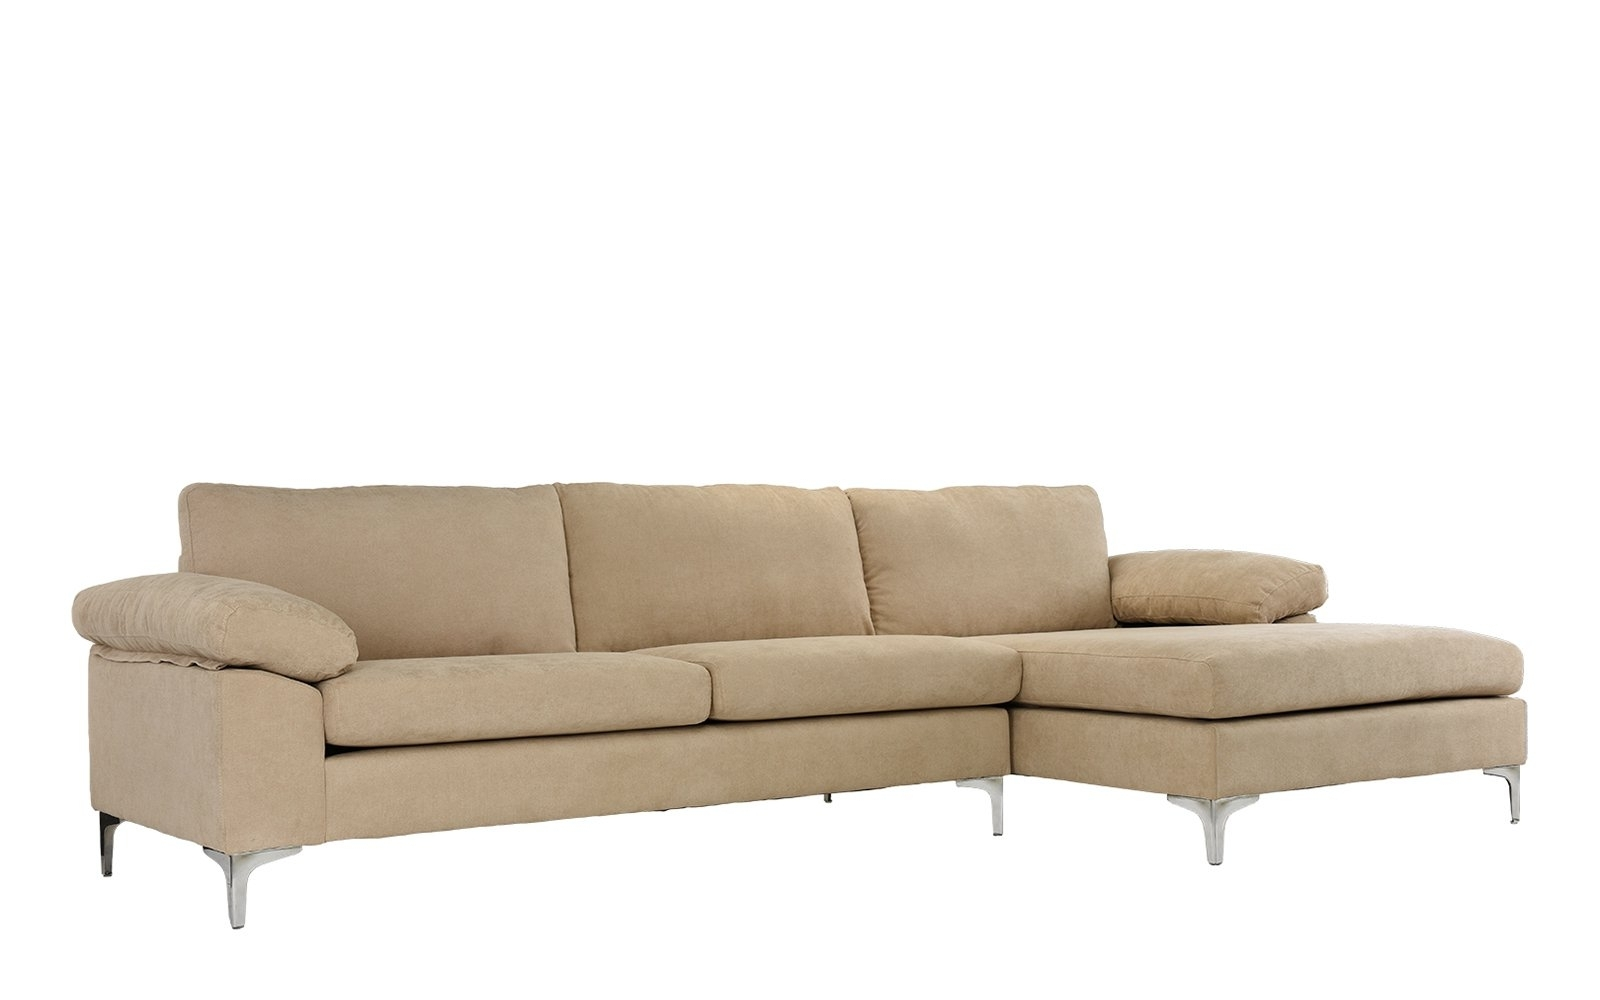 Gta Sectional Sofas Regarding Popular Best Free Modern Sectional Sofa Gta # (View 15 of 15)